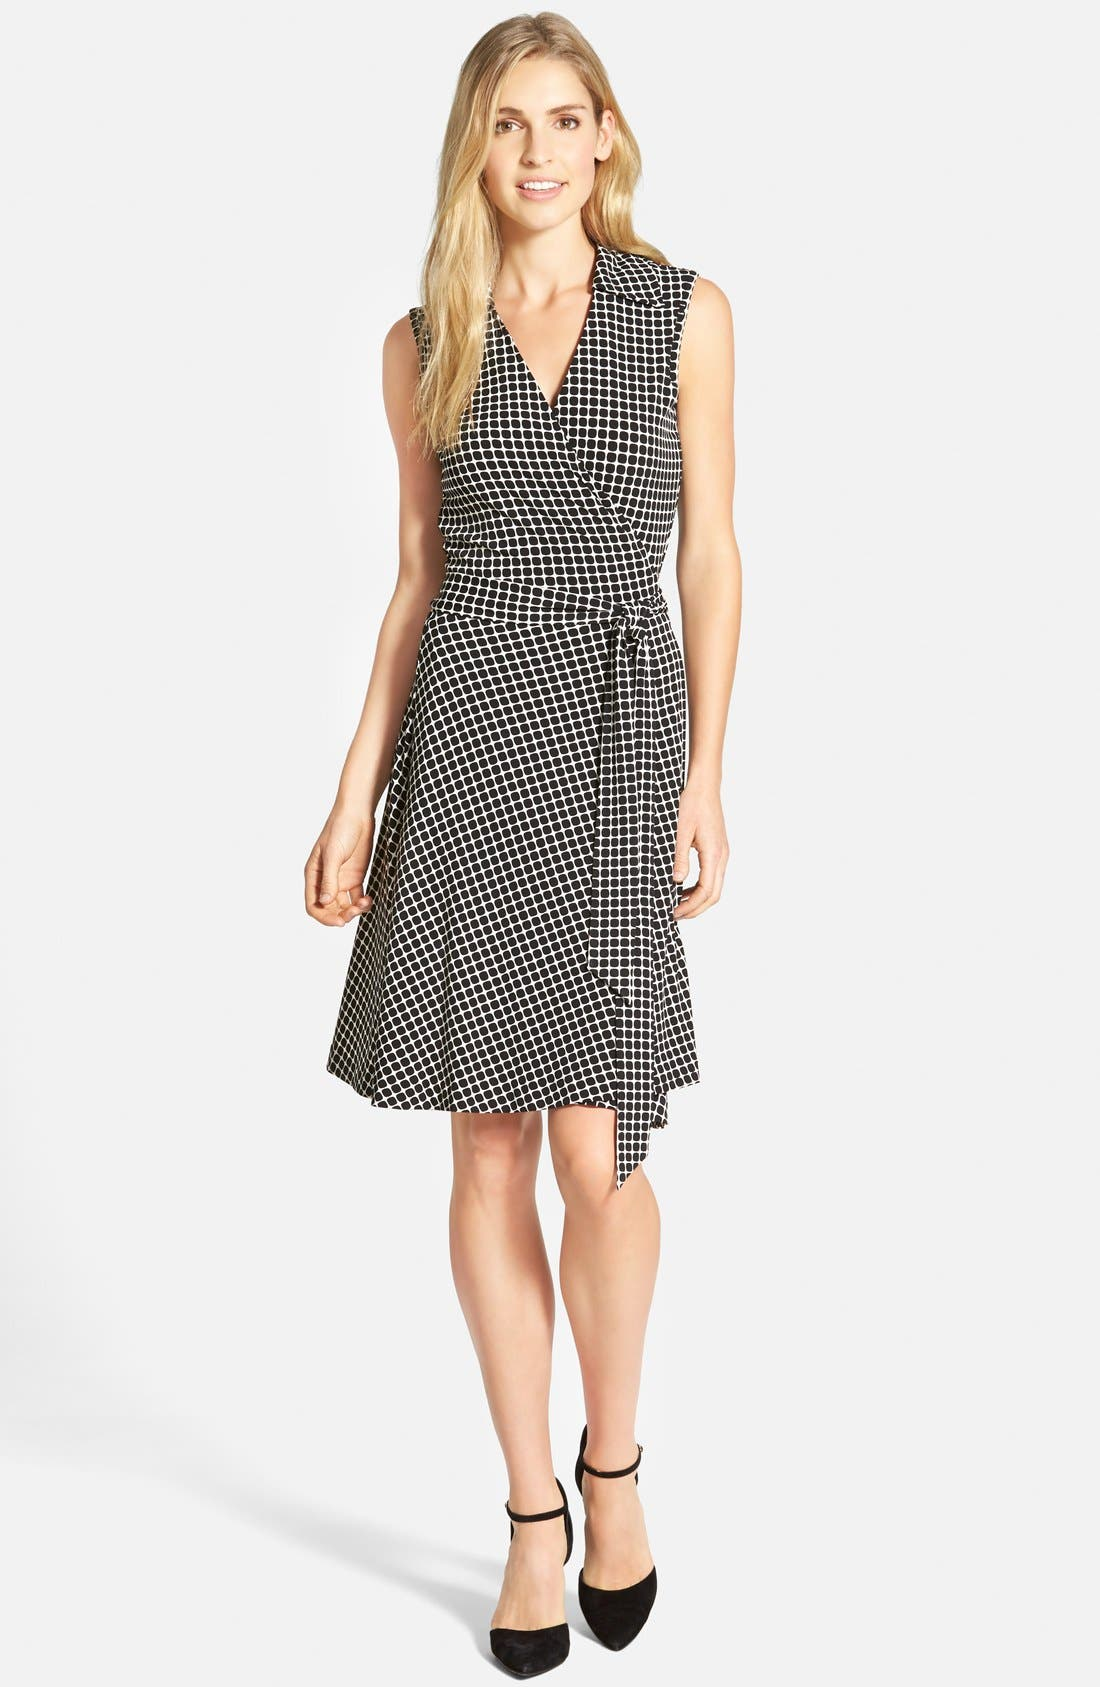 Alternate Image 1 Selected - Vince Camuto 'Graphic Boxes' Sleeveless Wrap Dress (Regular & Petite) (Nordstrom Online Exclusive)